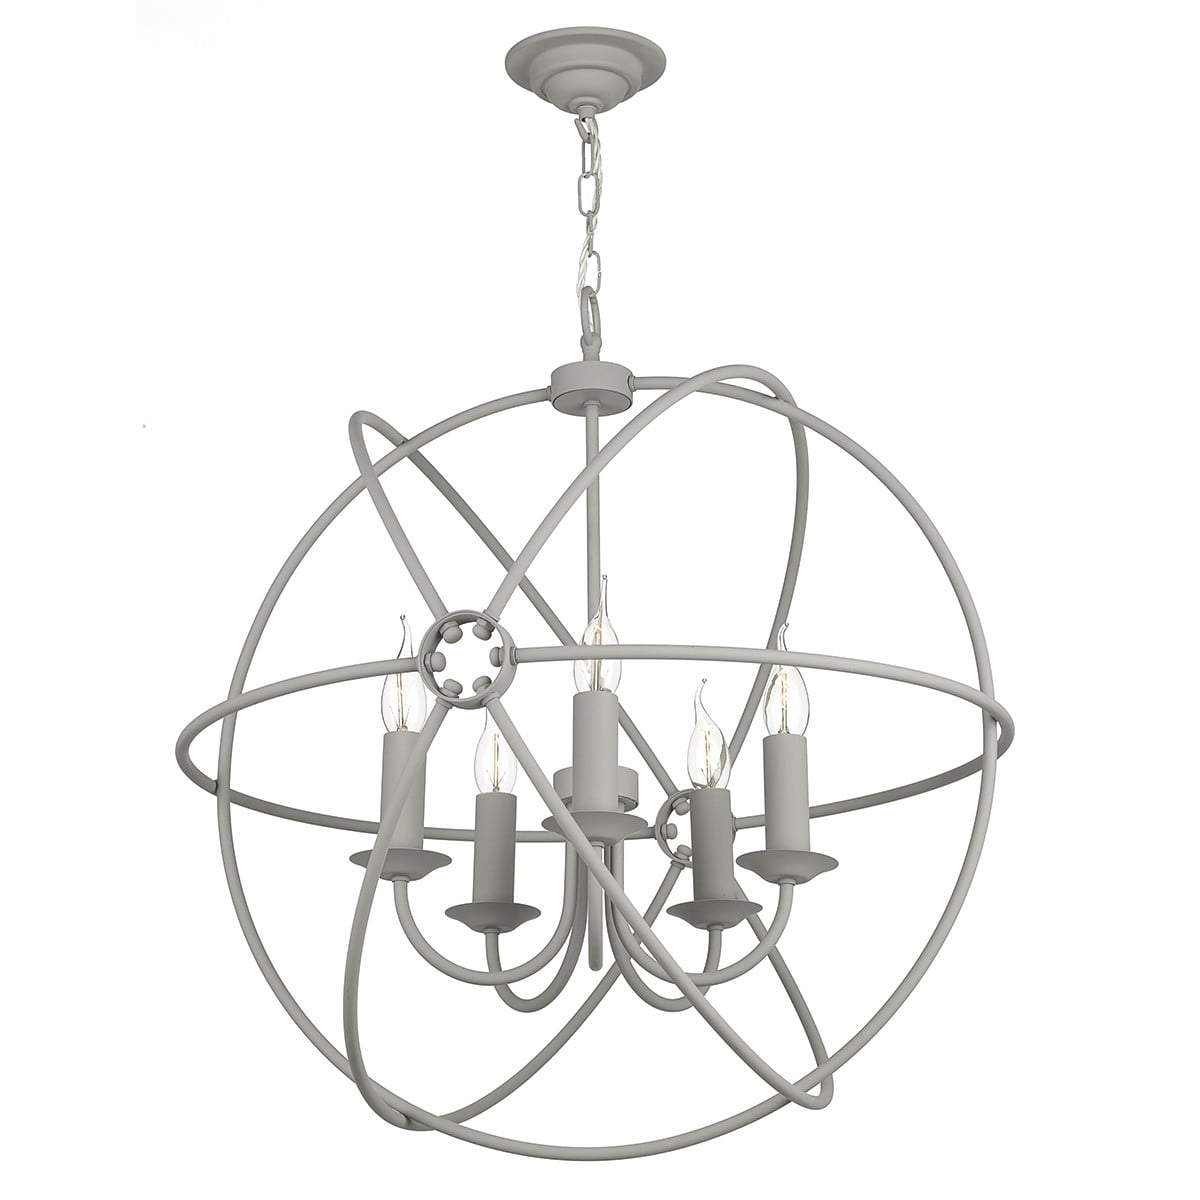 David Hunt Lighting ORB0539 Orb 5 Light Pendant in Ash Grey Finish